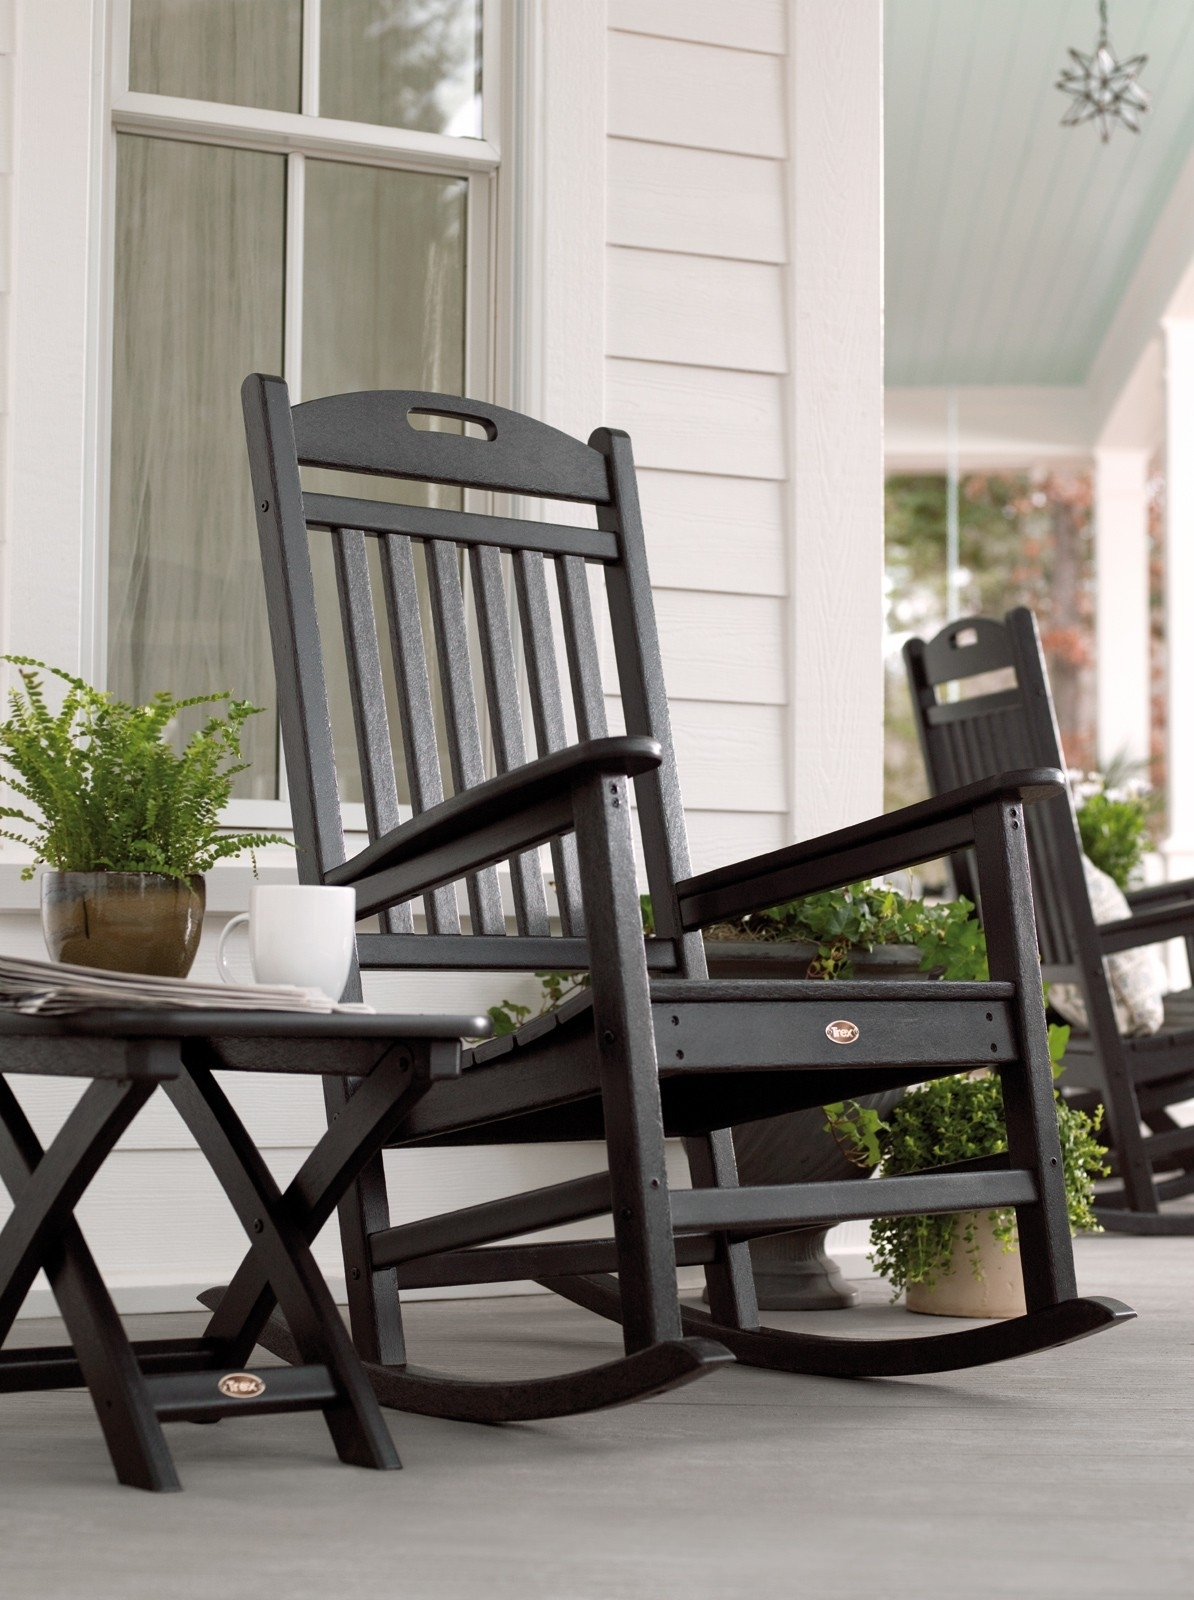 Popular Photo of Patio Rocking Chairs And Table